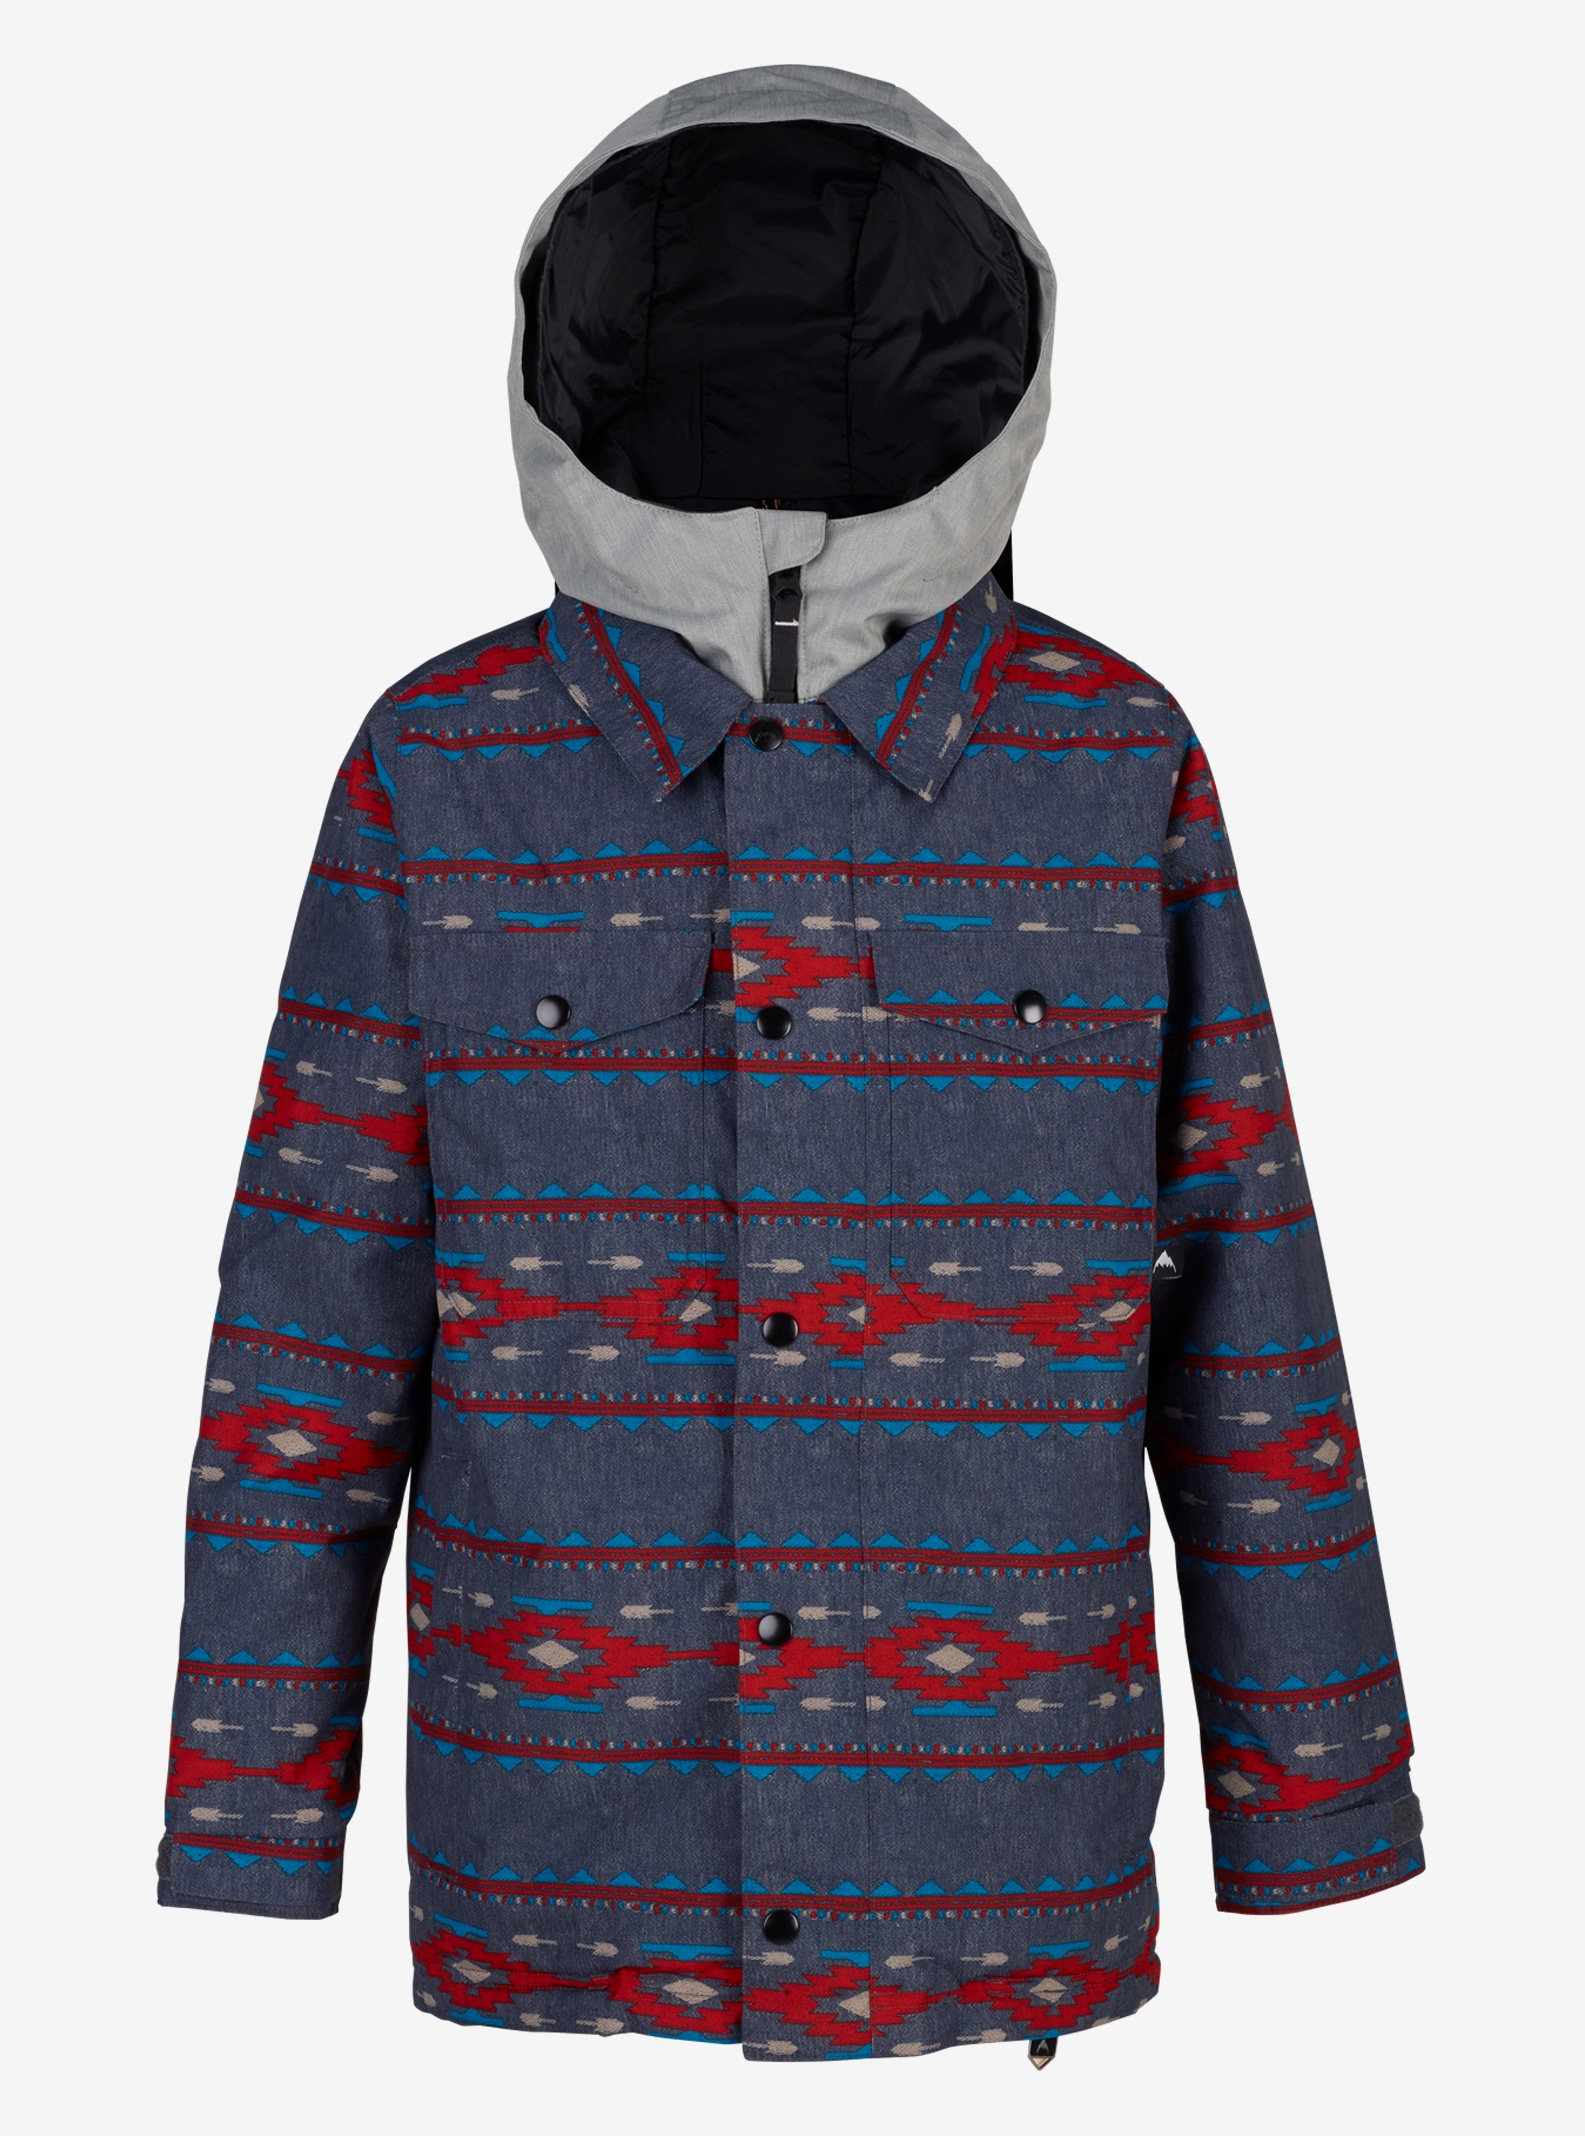 Boys' Burton Uproar Jacket shown in Bitters Saddle Stripe